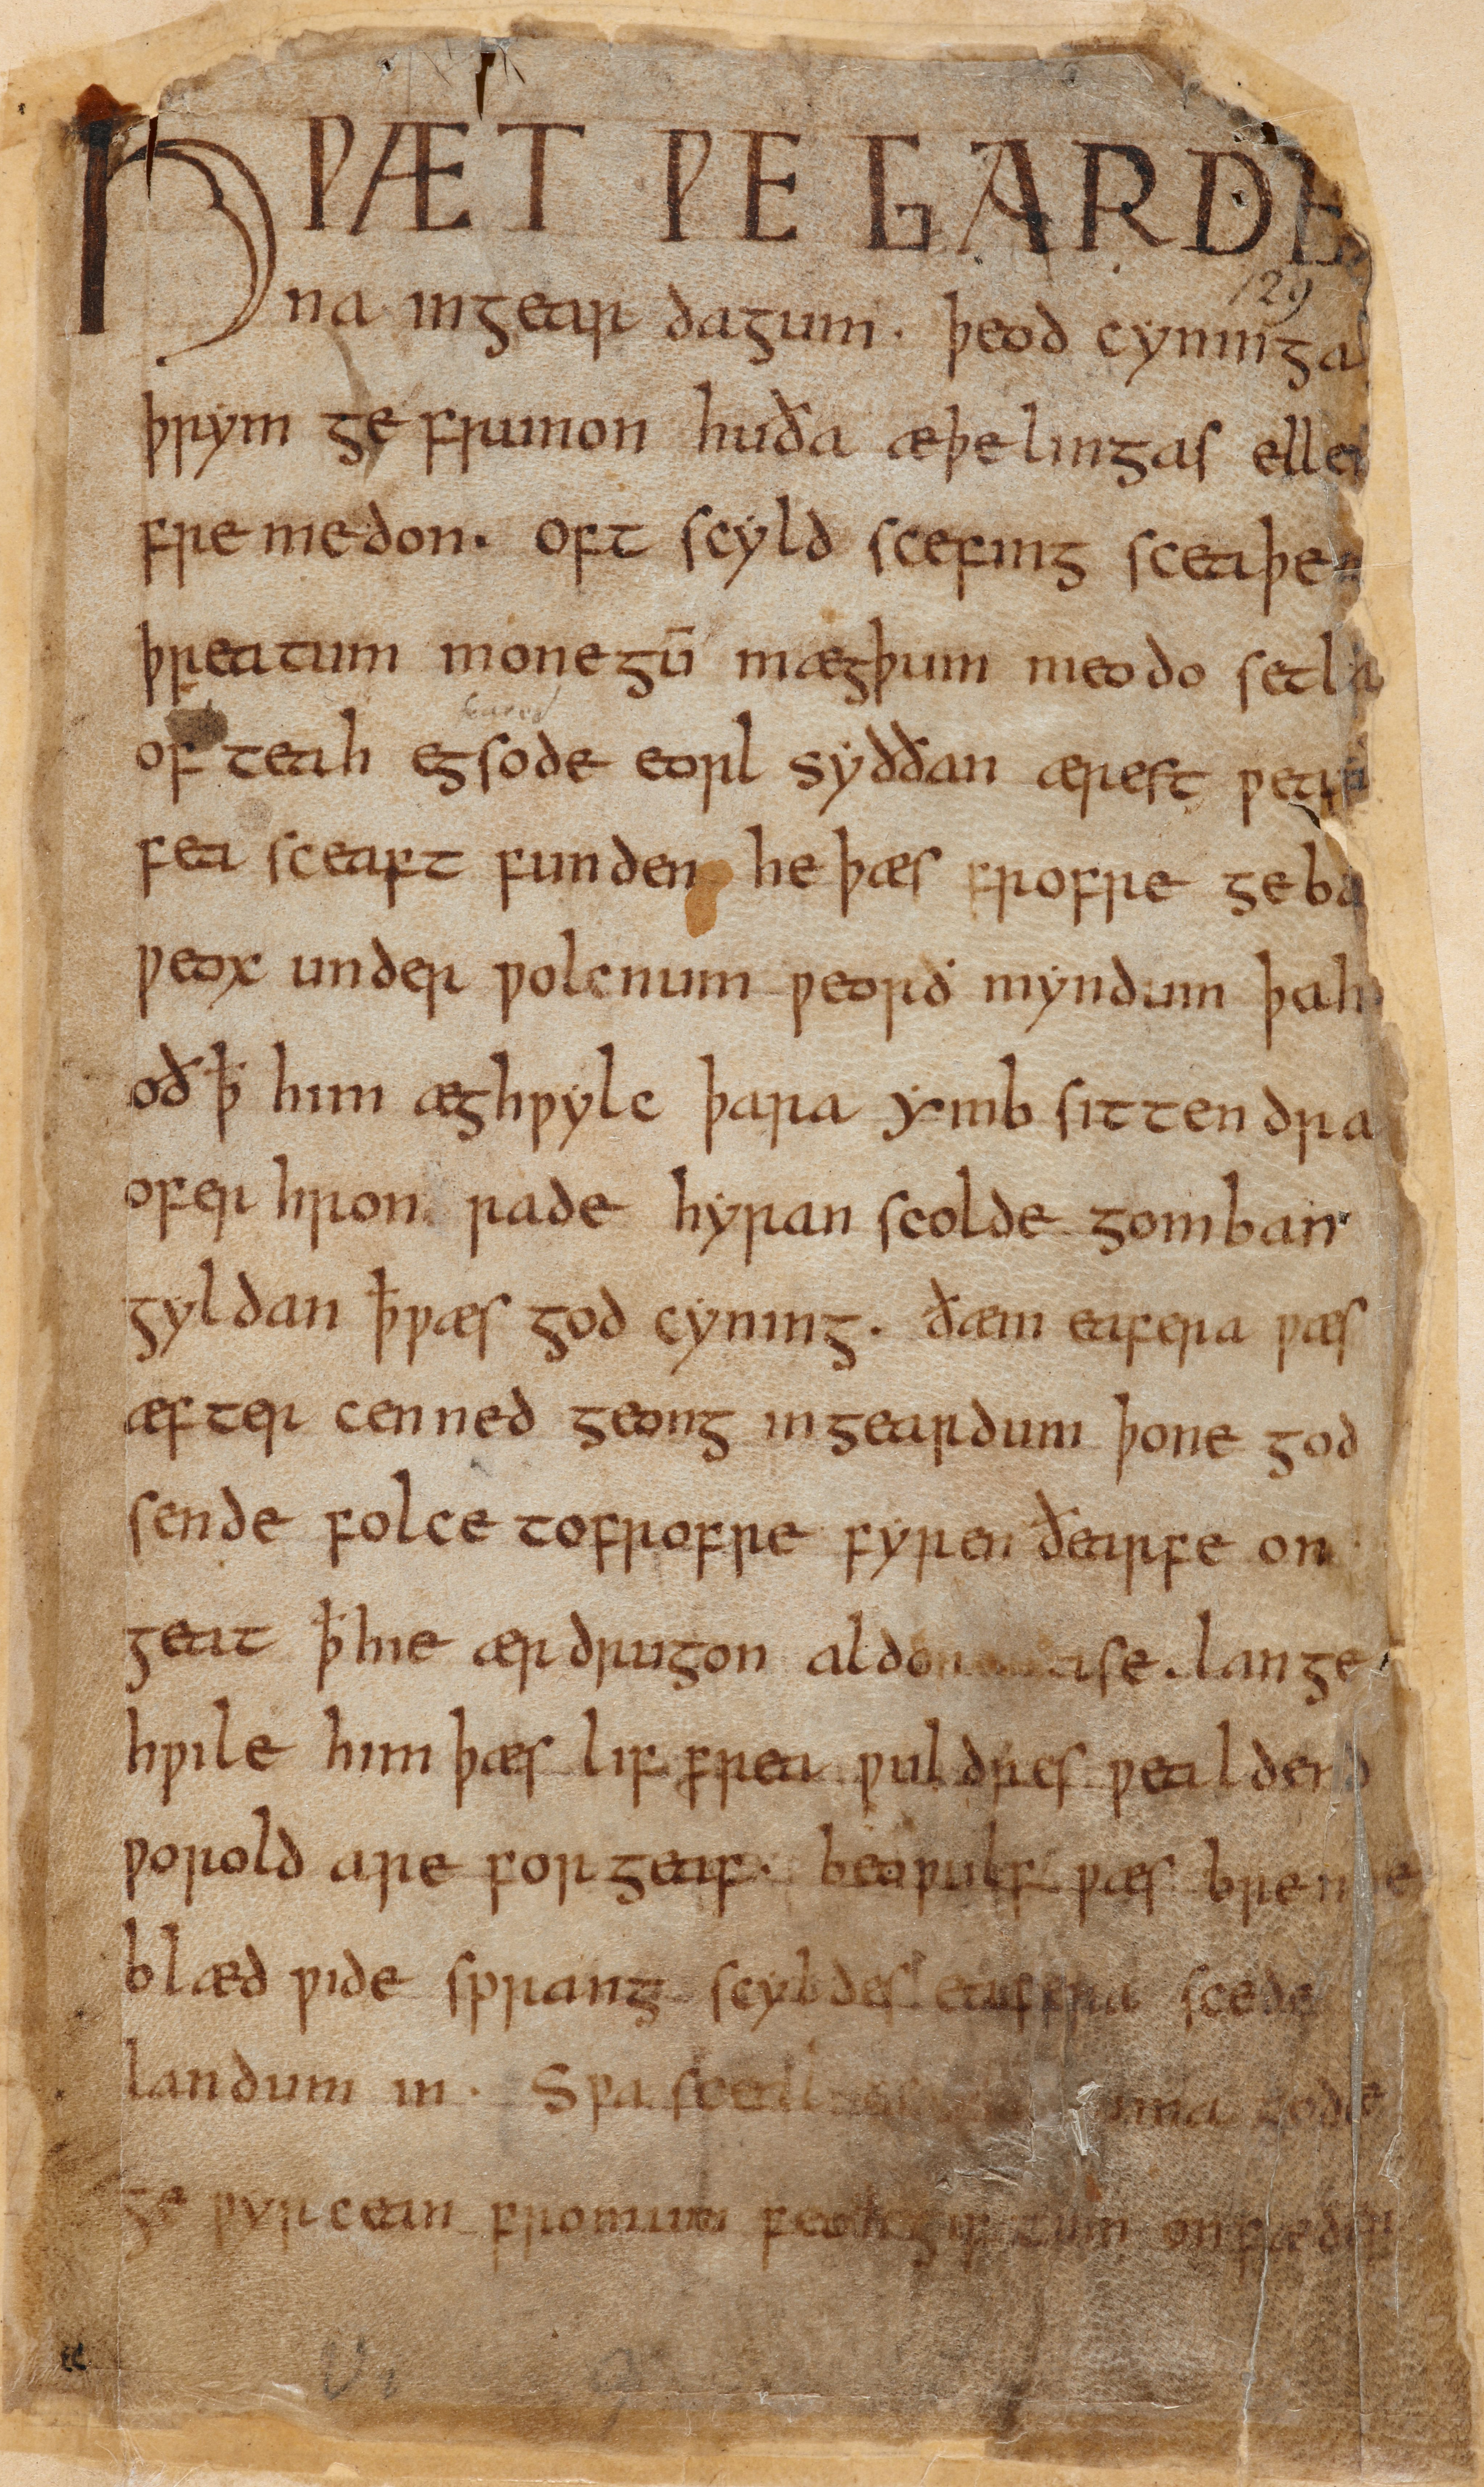 english language  wikipedia the opening to the old english epic poem beowulf handwritten in  halfuncial script ht  grdena ingar dagum od cyninga  rym ge  frunon listen